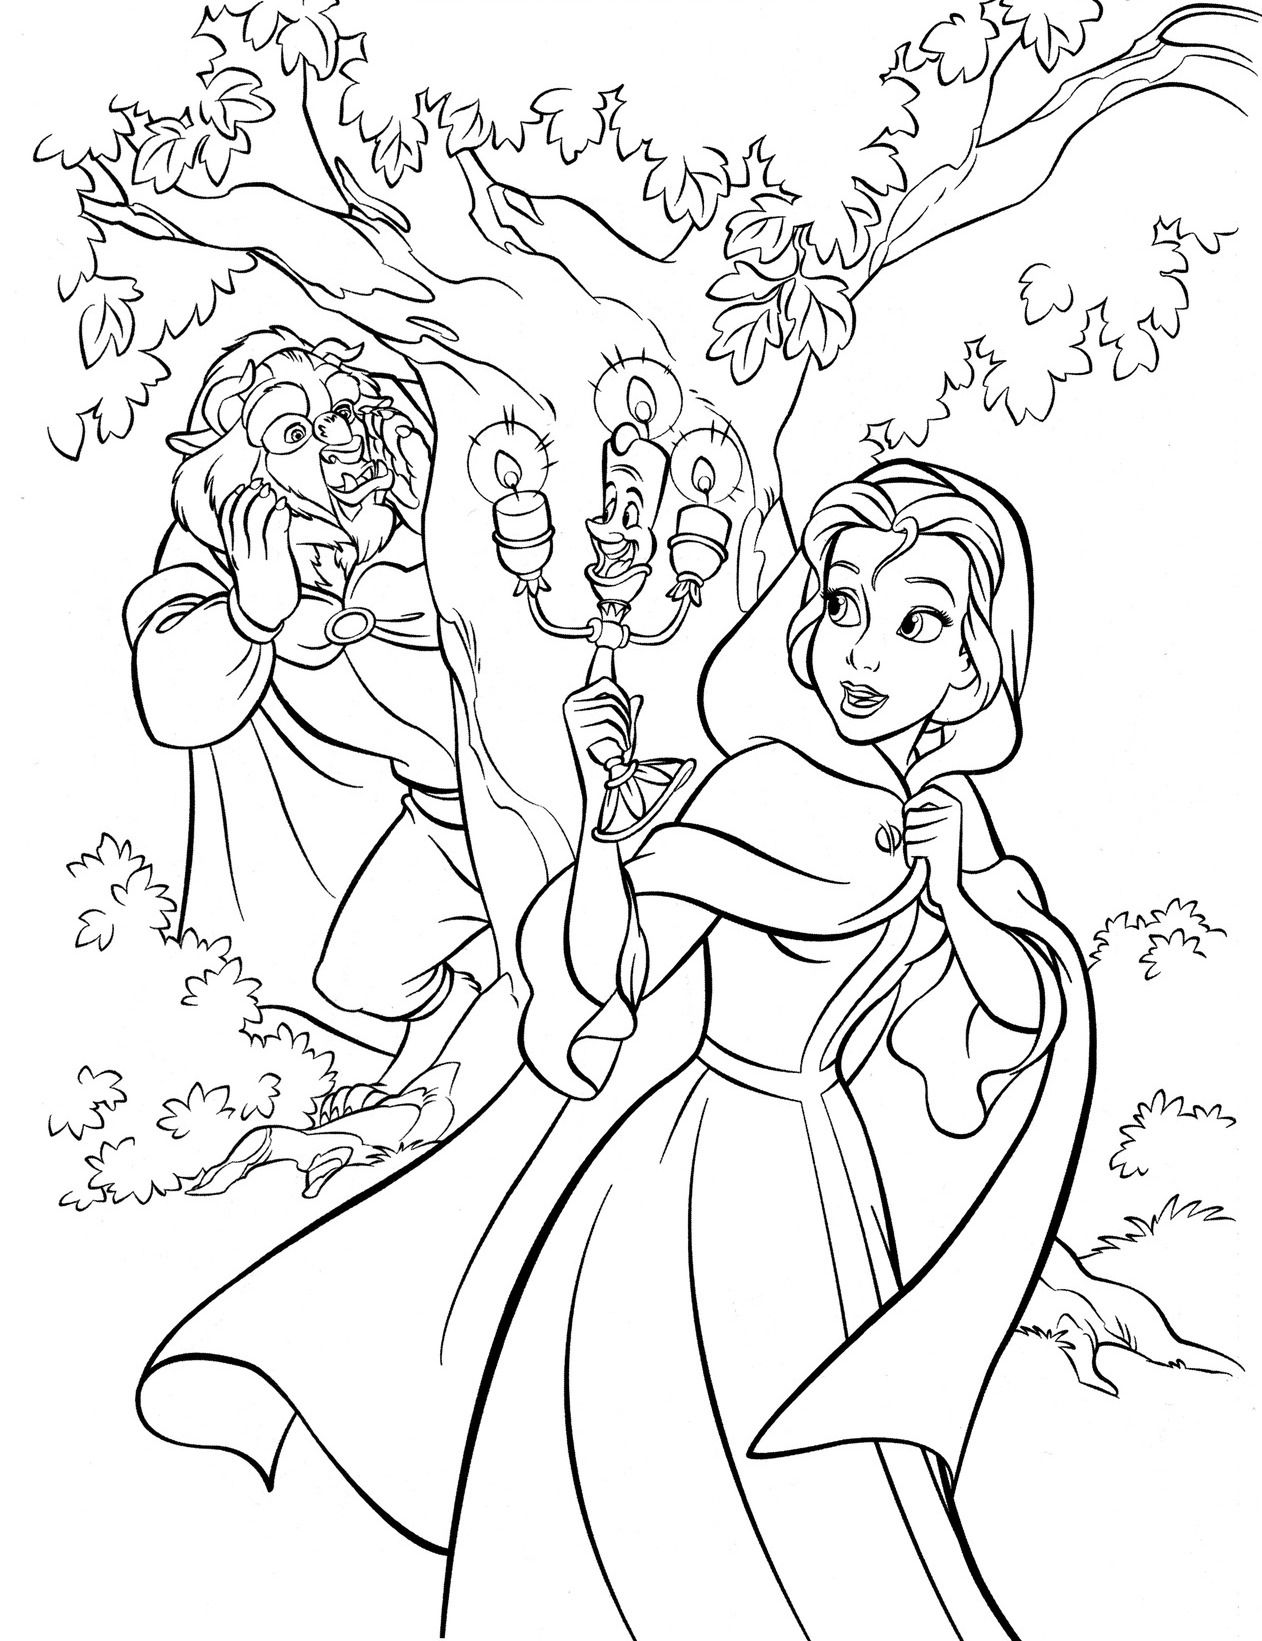 ariel and belle coloring pages belle ariel and cinderella coloring pages coloring home ariel and pages coloring belle